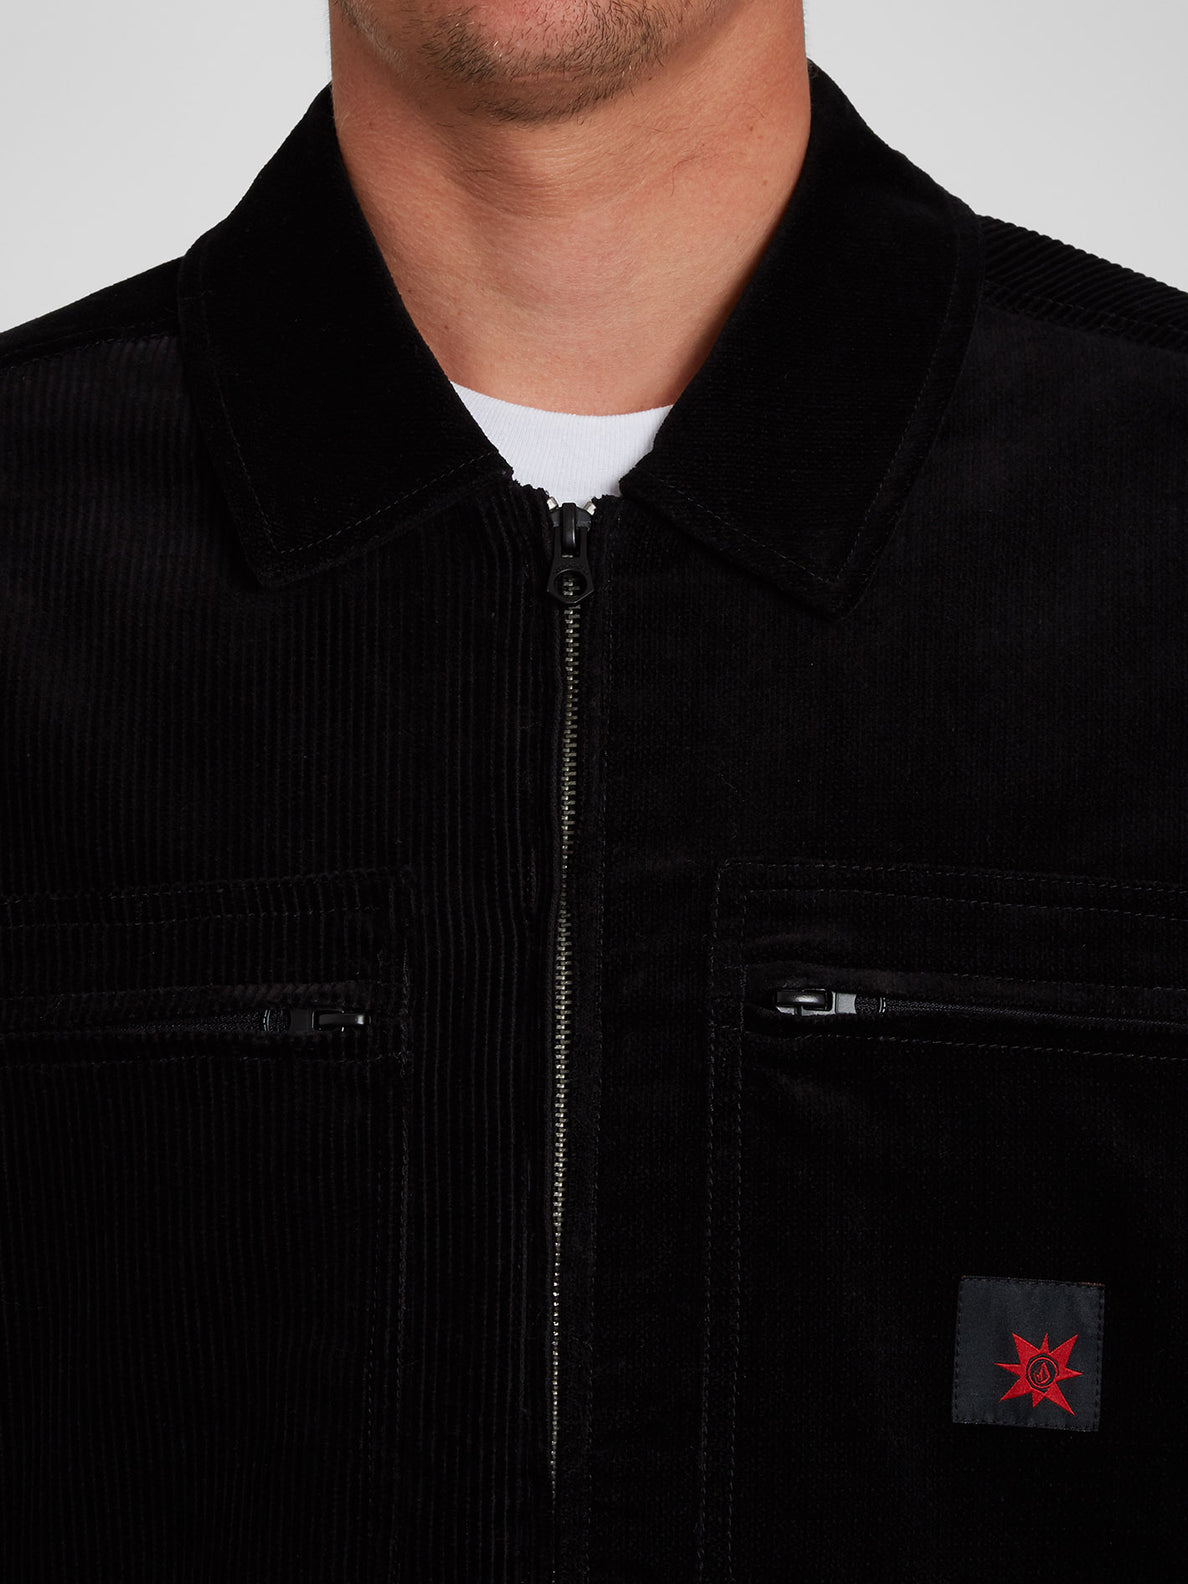 Averted Visions Jacket - BLACK (A1642007_BLK) [3]